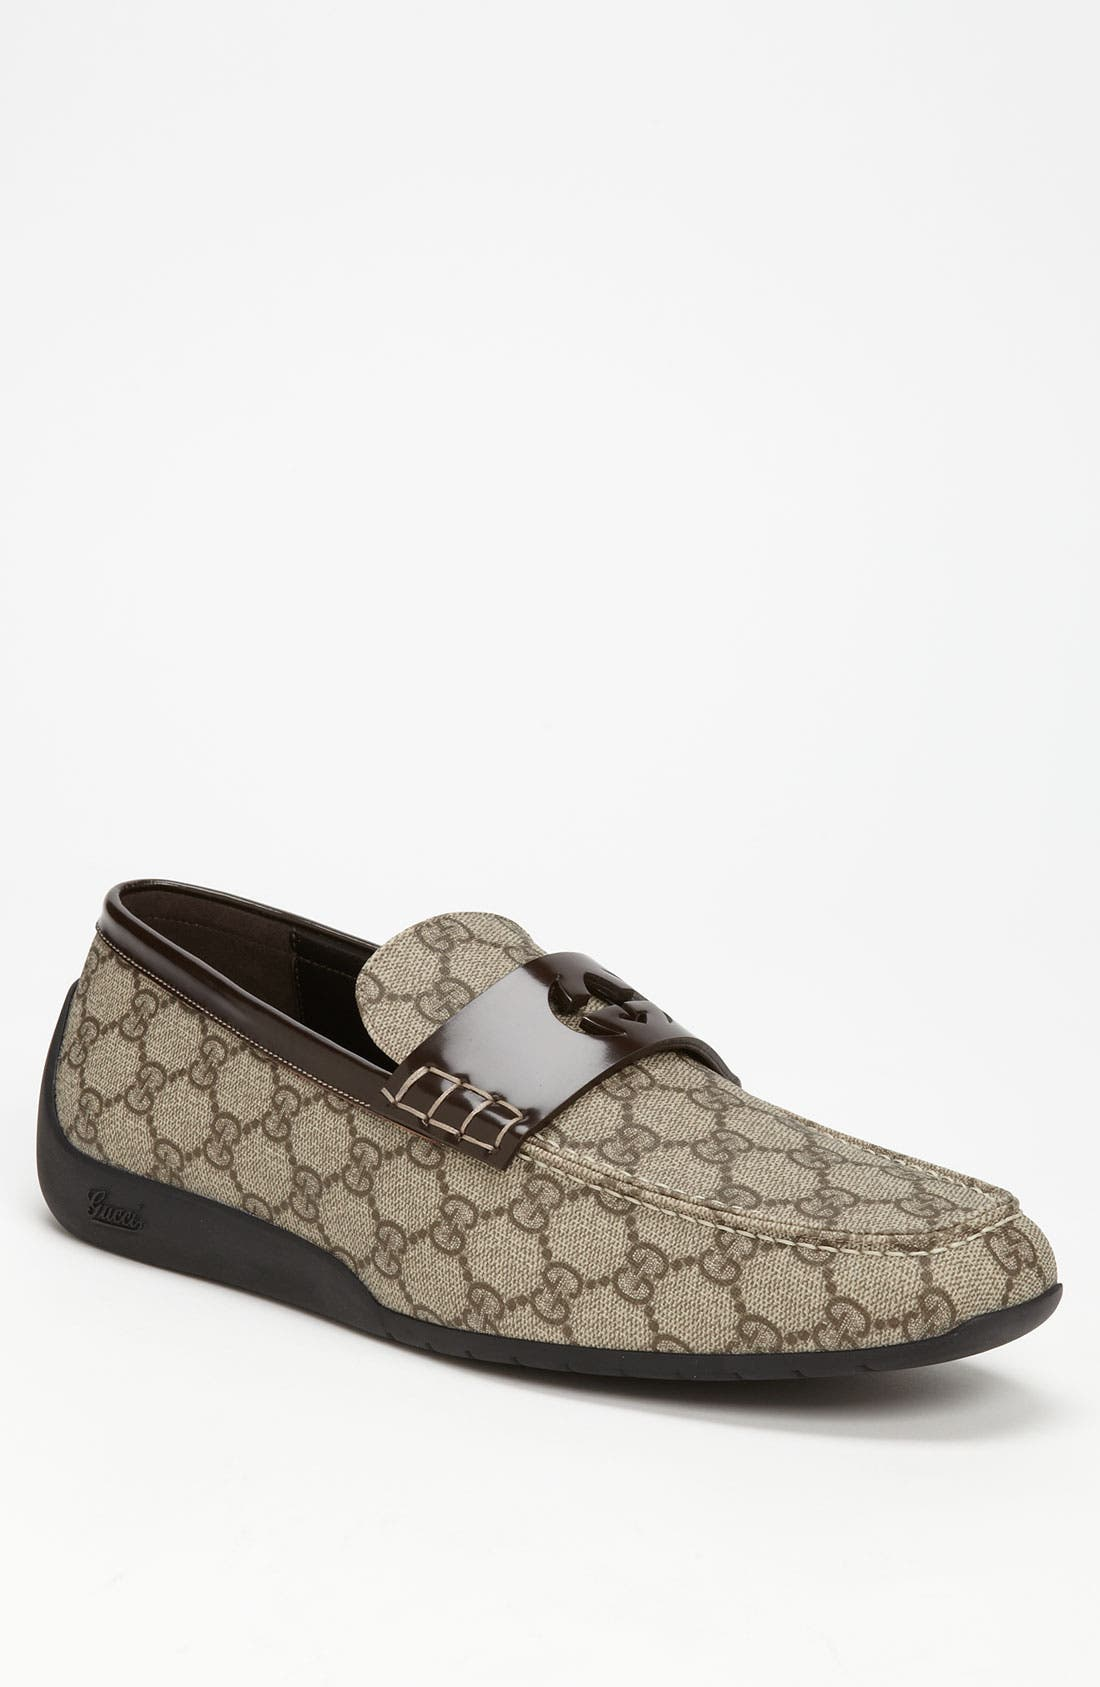 Alternate Image 1 Selected - Gucci 'Silverstone' Driving Shoe